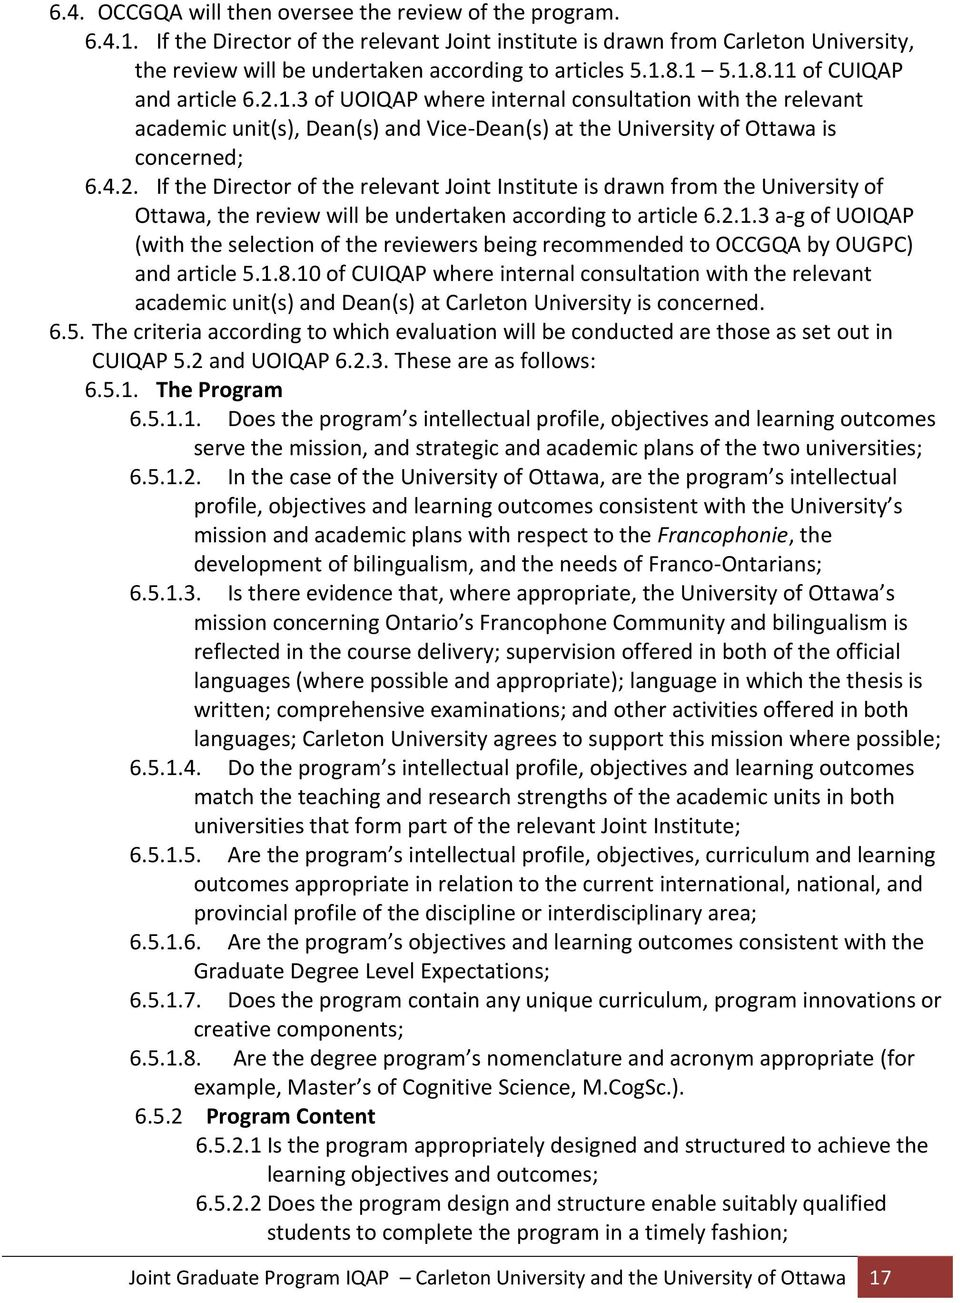 8.1 5.1.8.11 of CUIQAP and article 6.2.1.3 of UOIQAP where internal consultation with the relevant academic unit(s), Dean(s) and Vice-Dean(s) at the University of Ottawa is concerned; 6.4.2. If the Director of the relevant Joint Institute is drawn from the University of Ottawa, the review will be undertaken according to article 6.